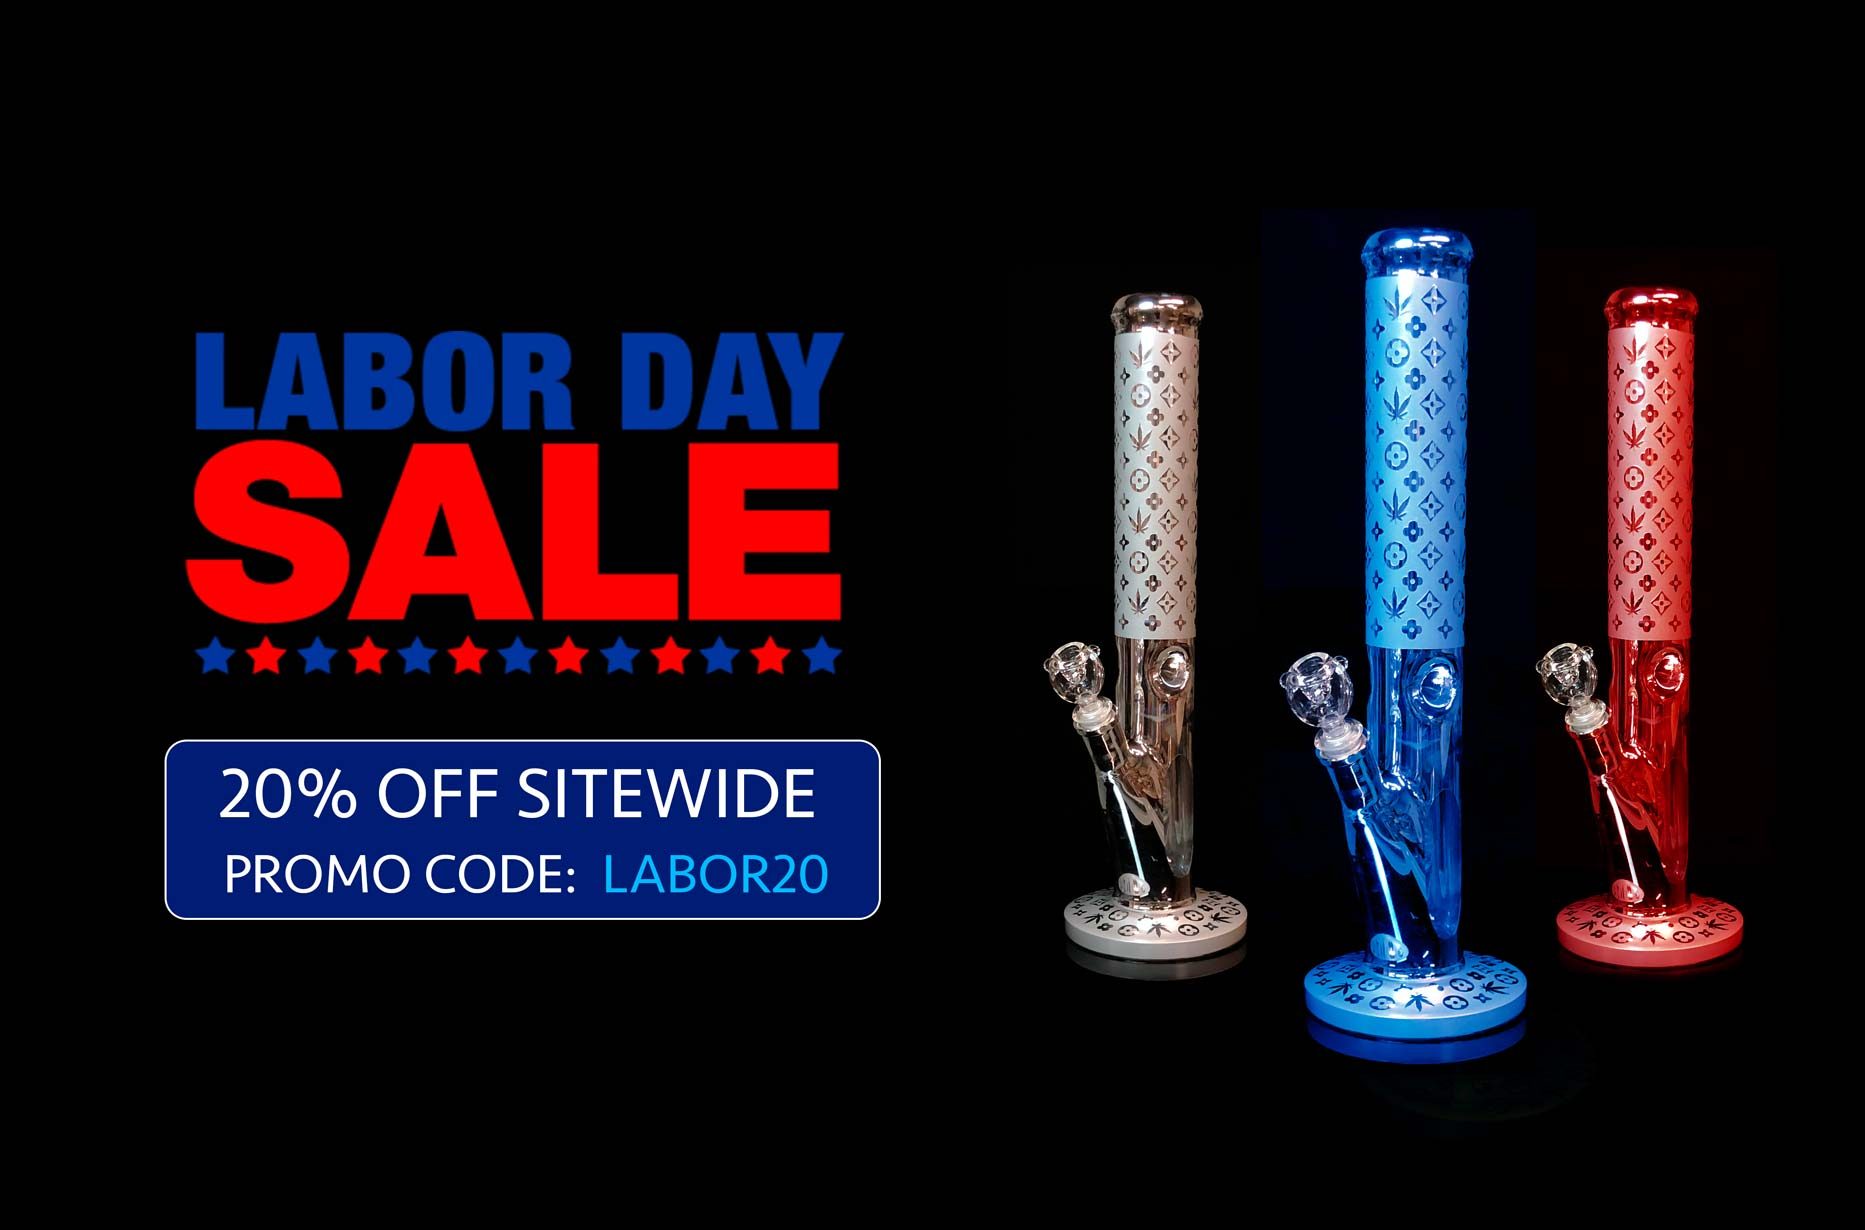 The #1 Online Headshop - Free Shipping on Dab Rigs, Bongs